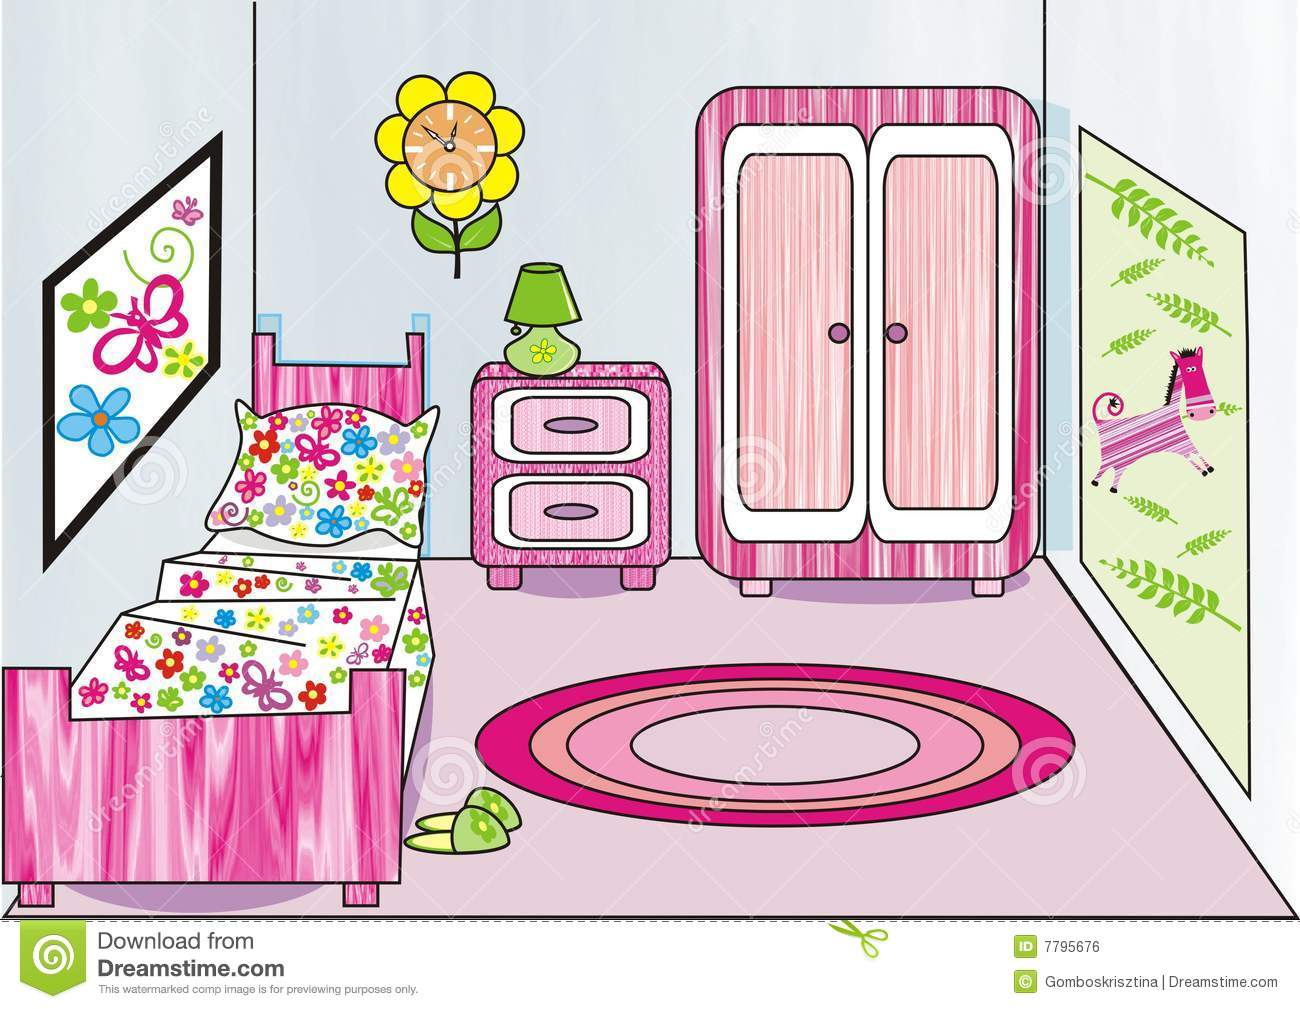 Clean room clipart 6 » Clipart Station.